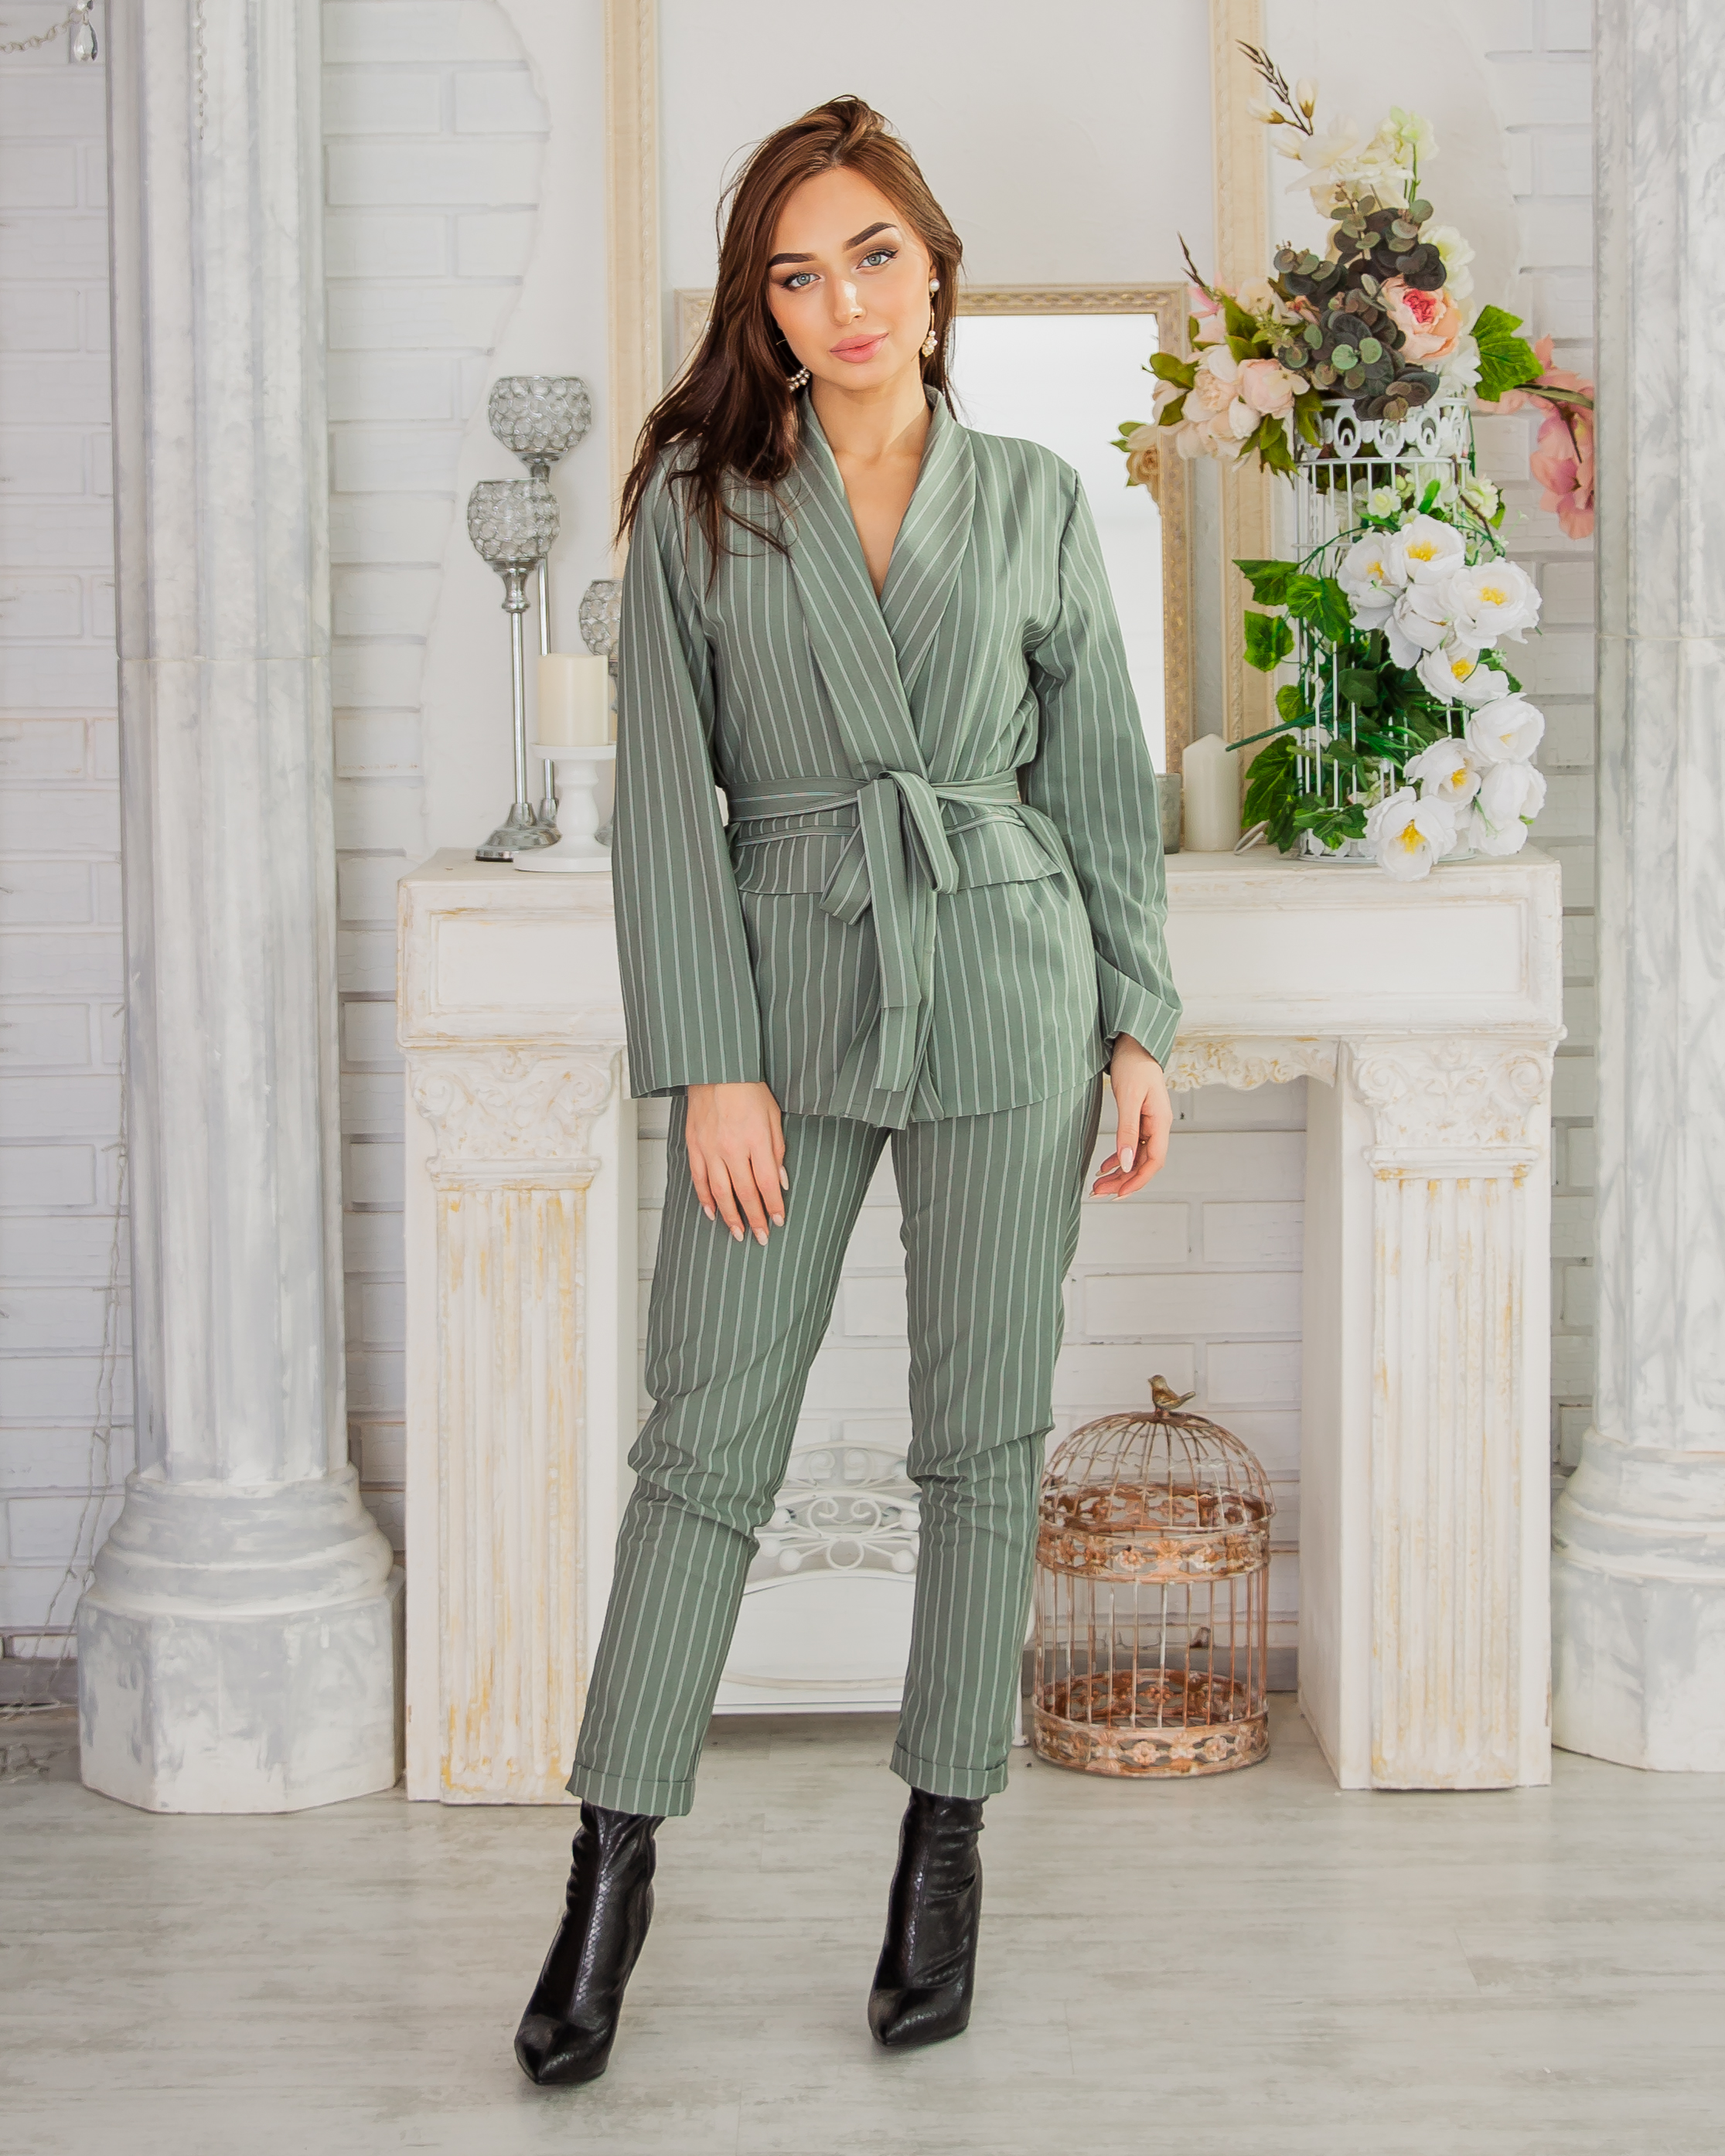 Women Striped Suit Handsome Casual Autumn Winter Российское Production Shipping From Russia Emberens